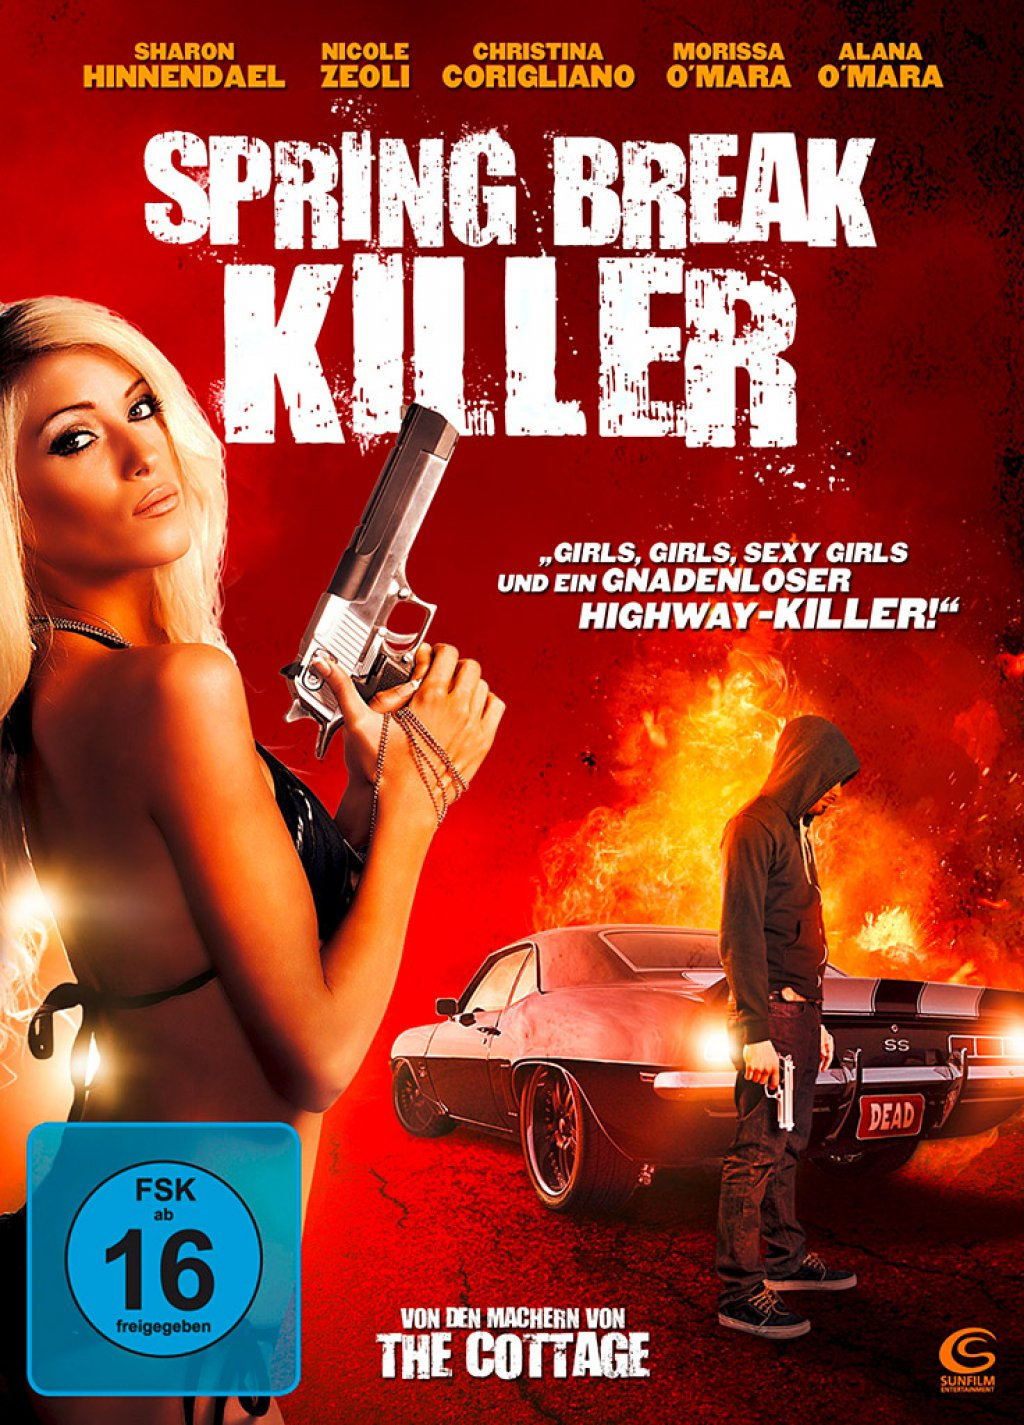 تحميل فيلم Spring Break Killer